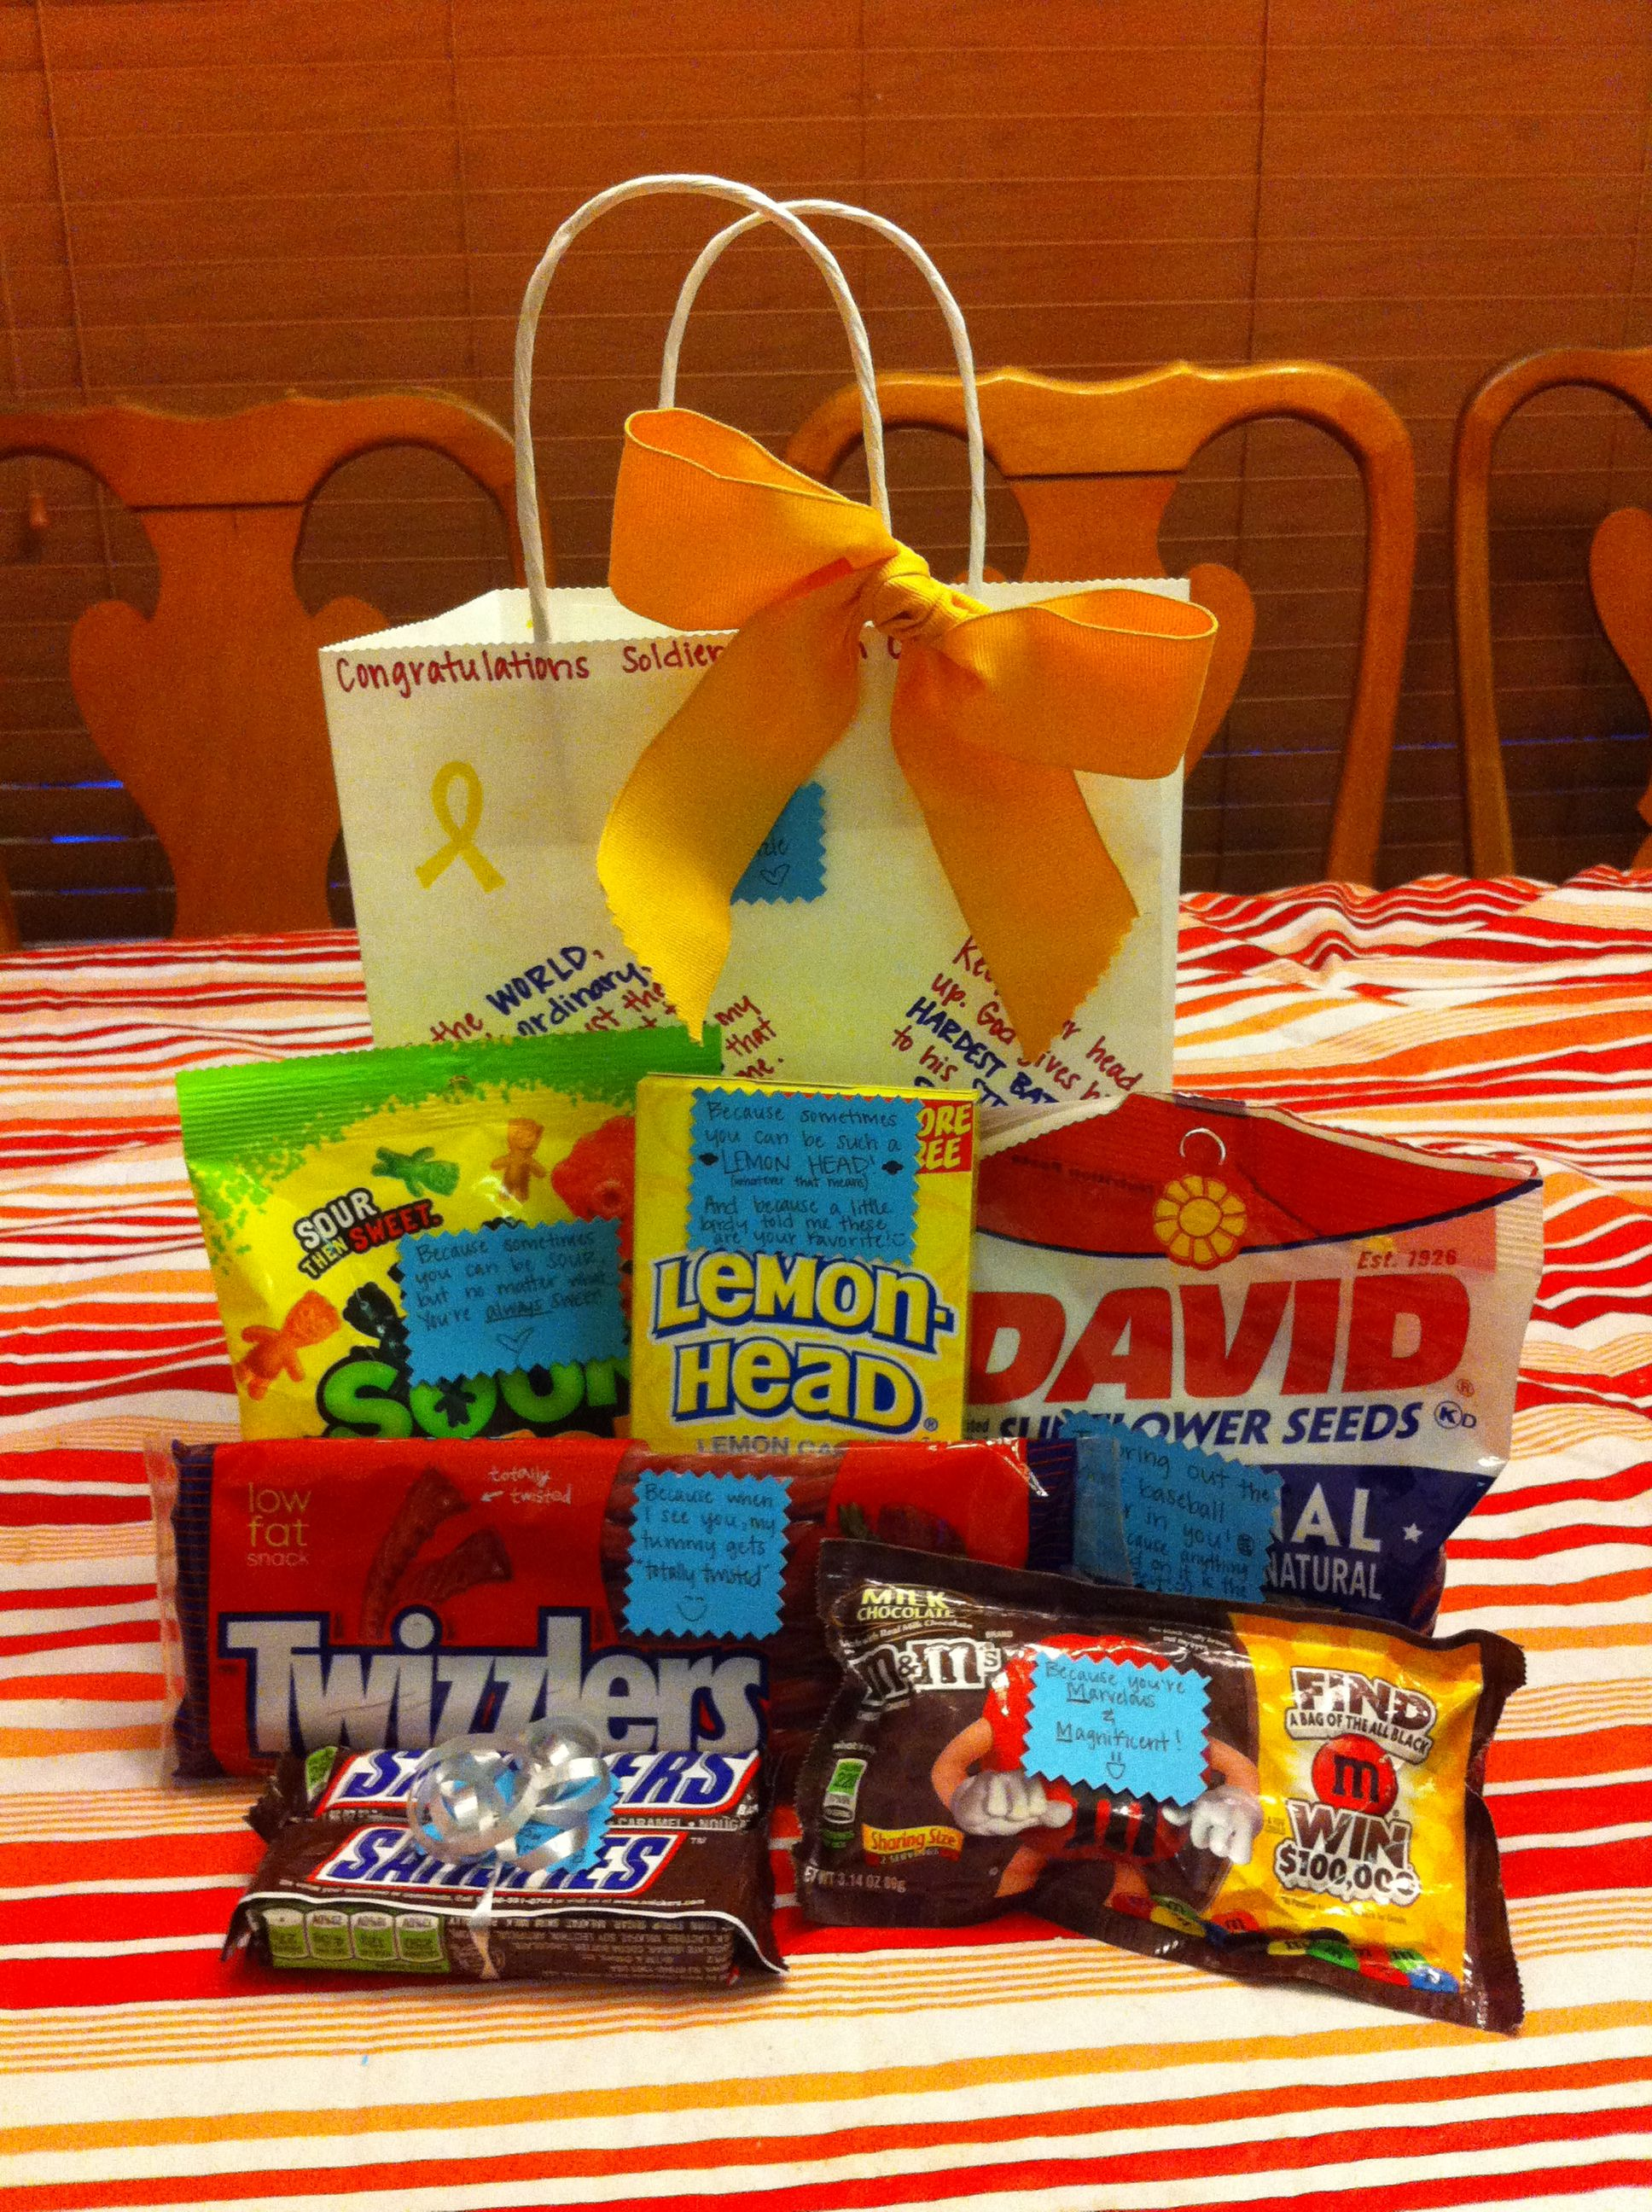 Post Basic Training graduation gift! After over three months without much junk food, soldiers need their sweets!